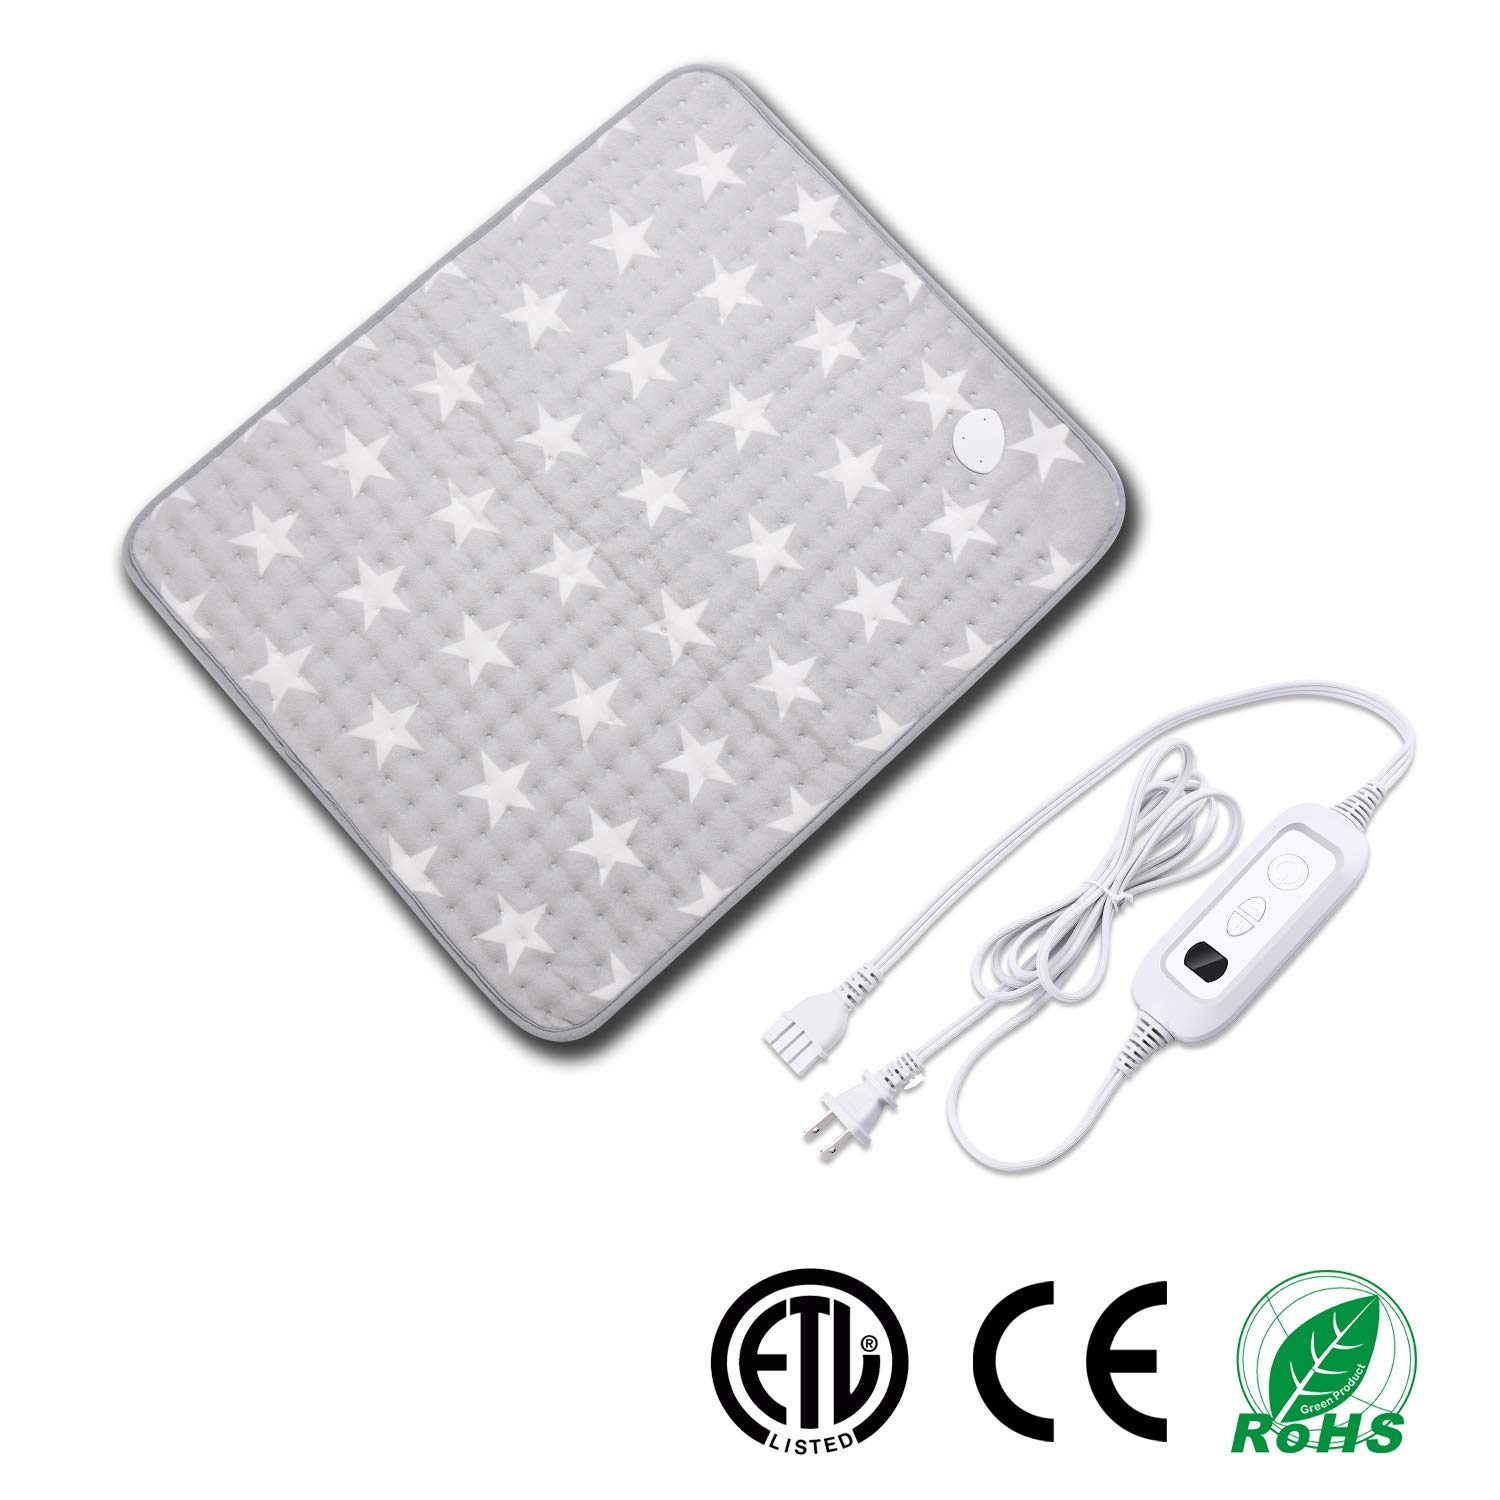 Heating Pad for Muscle Pain Relief with Strap, Electric Heat Therapy Heating Pad with Auto Shut-Off, Fast Heat-up with 6 Heating Levels,Super Soft Material (23.6''x19.7'', Gray-Star Pattern) by Dr.Duane